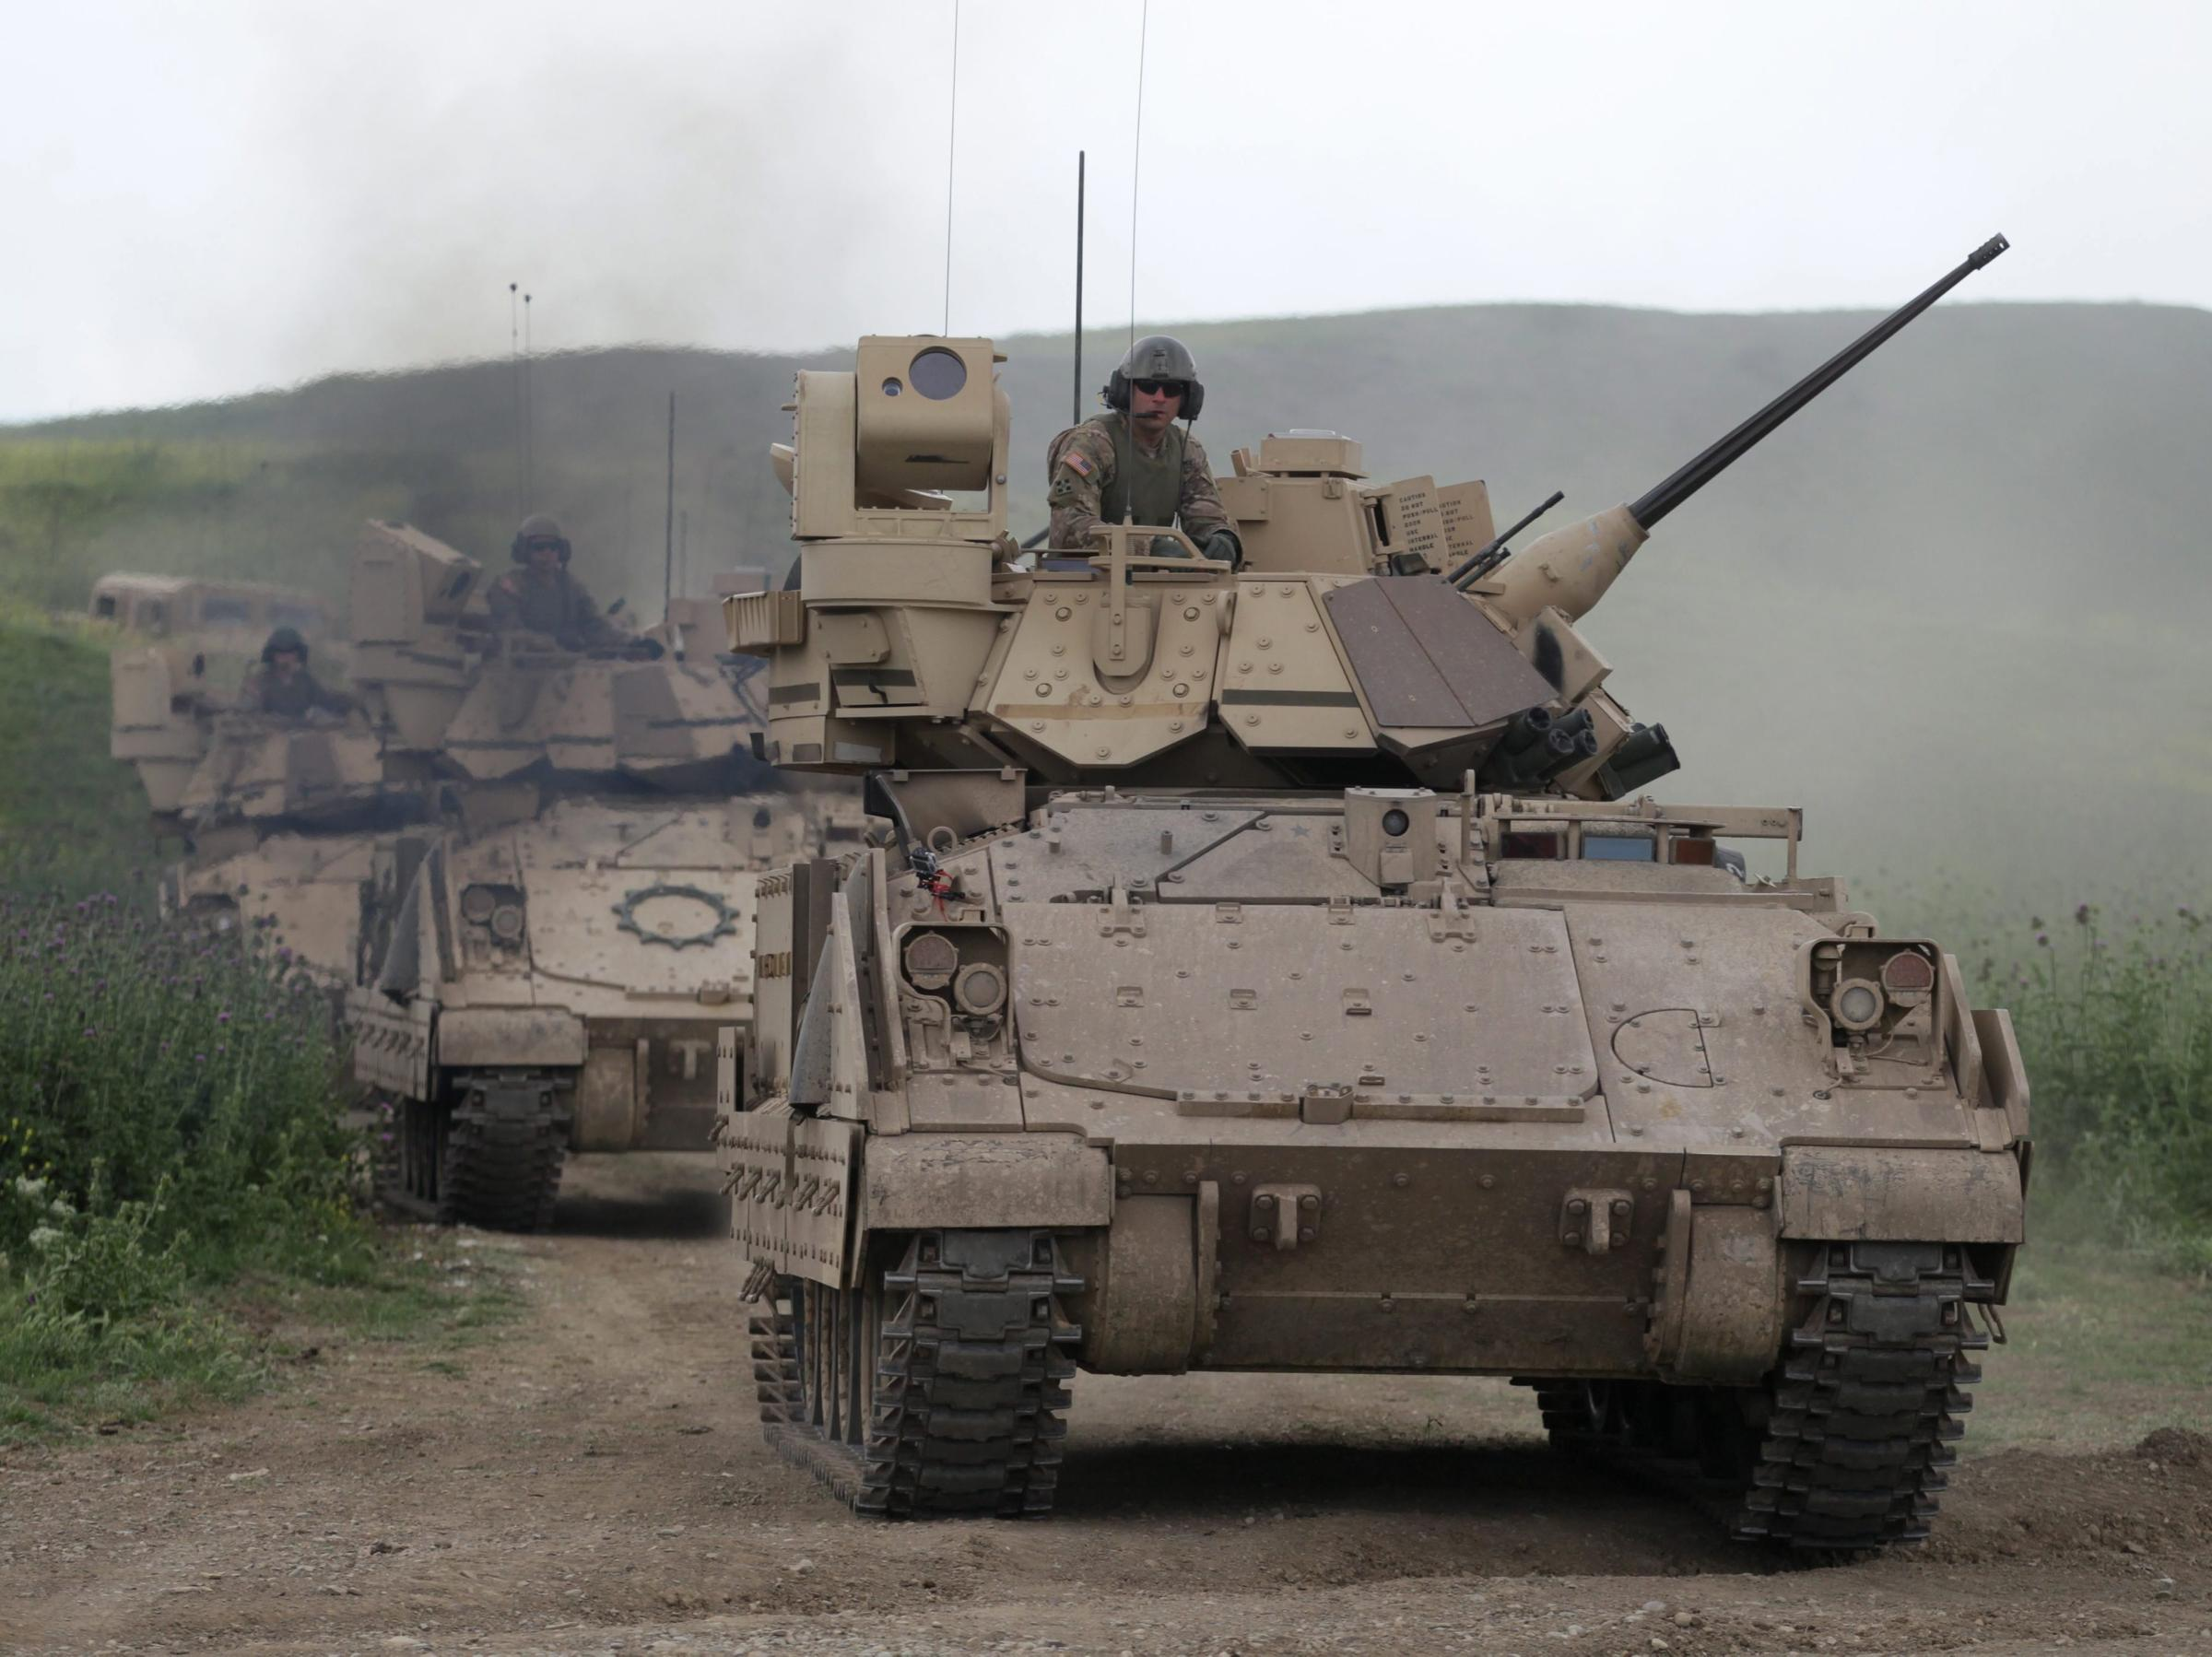 U.S. Bradley fighting vehicles take part in a joint exercise with Georgia at a military base near Tbilisi. Bradleys would be deployed to NATO member states in Eastern Europe and the Baltics if a Pentagon proposal is approved.